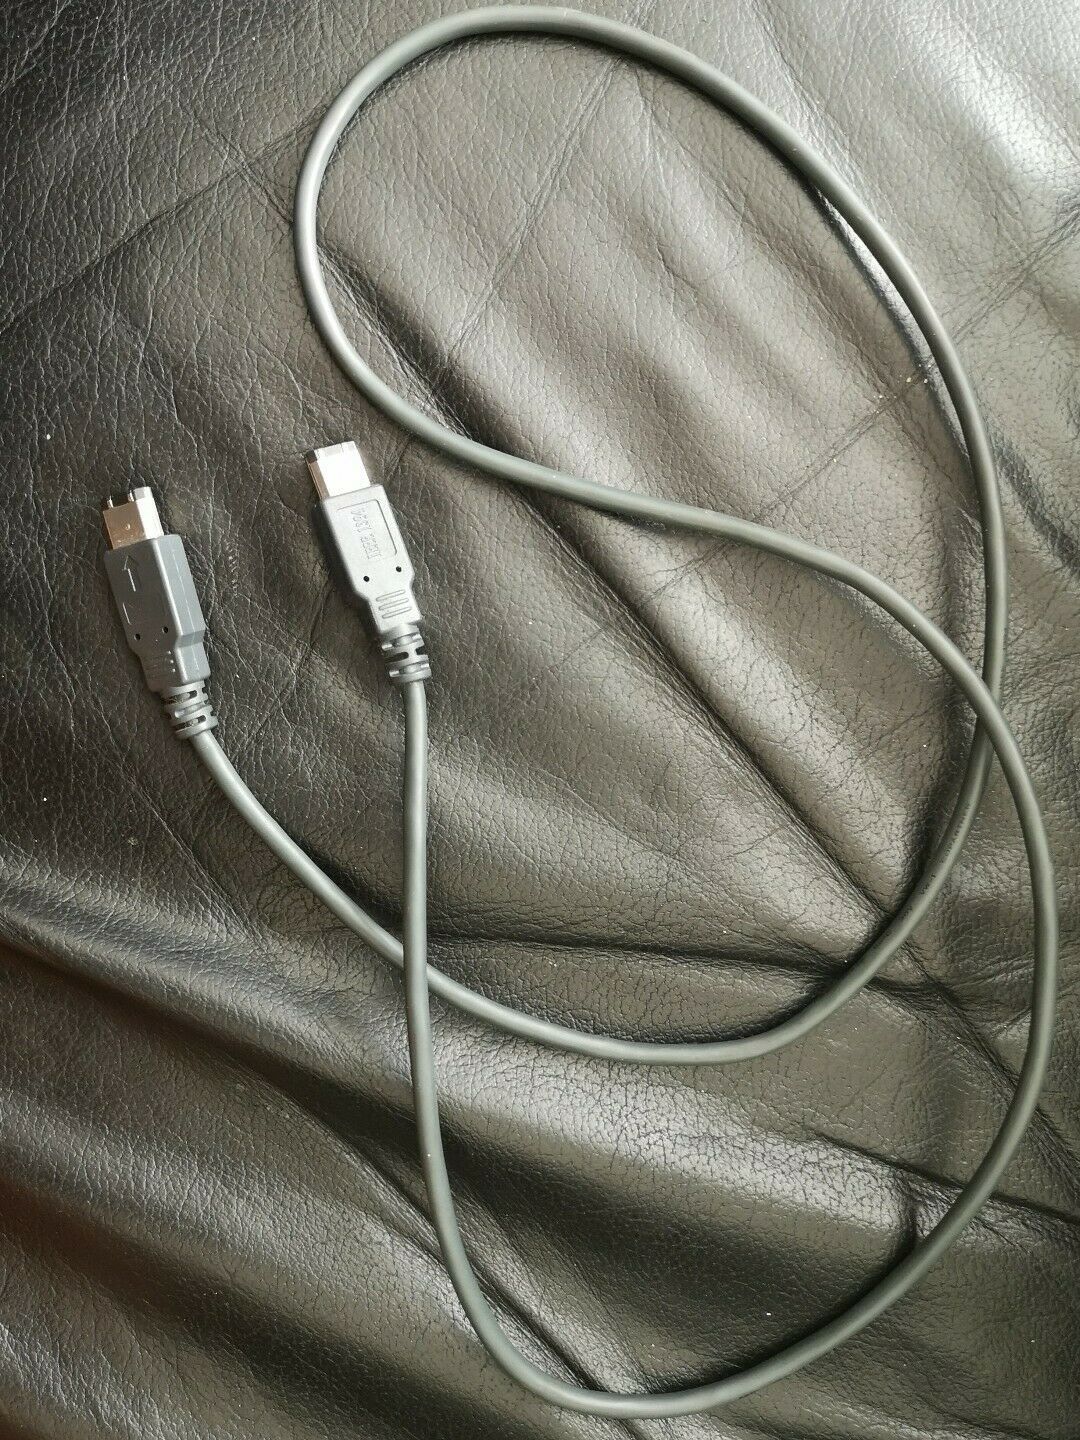 Firewire Cable 6 to 6 pin (PC or Mac) DV To PC - IEEE 1394 1.2 meters